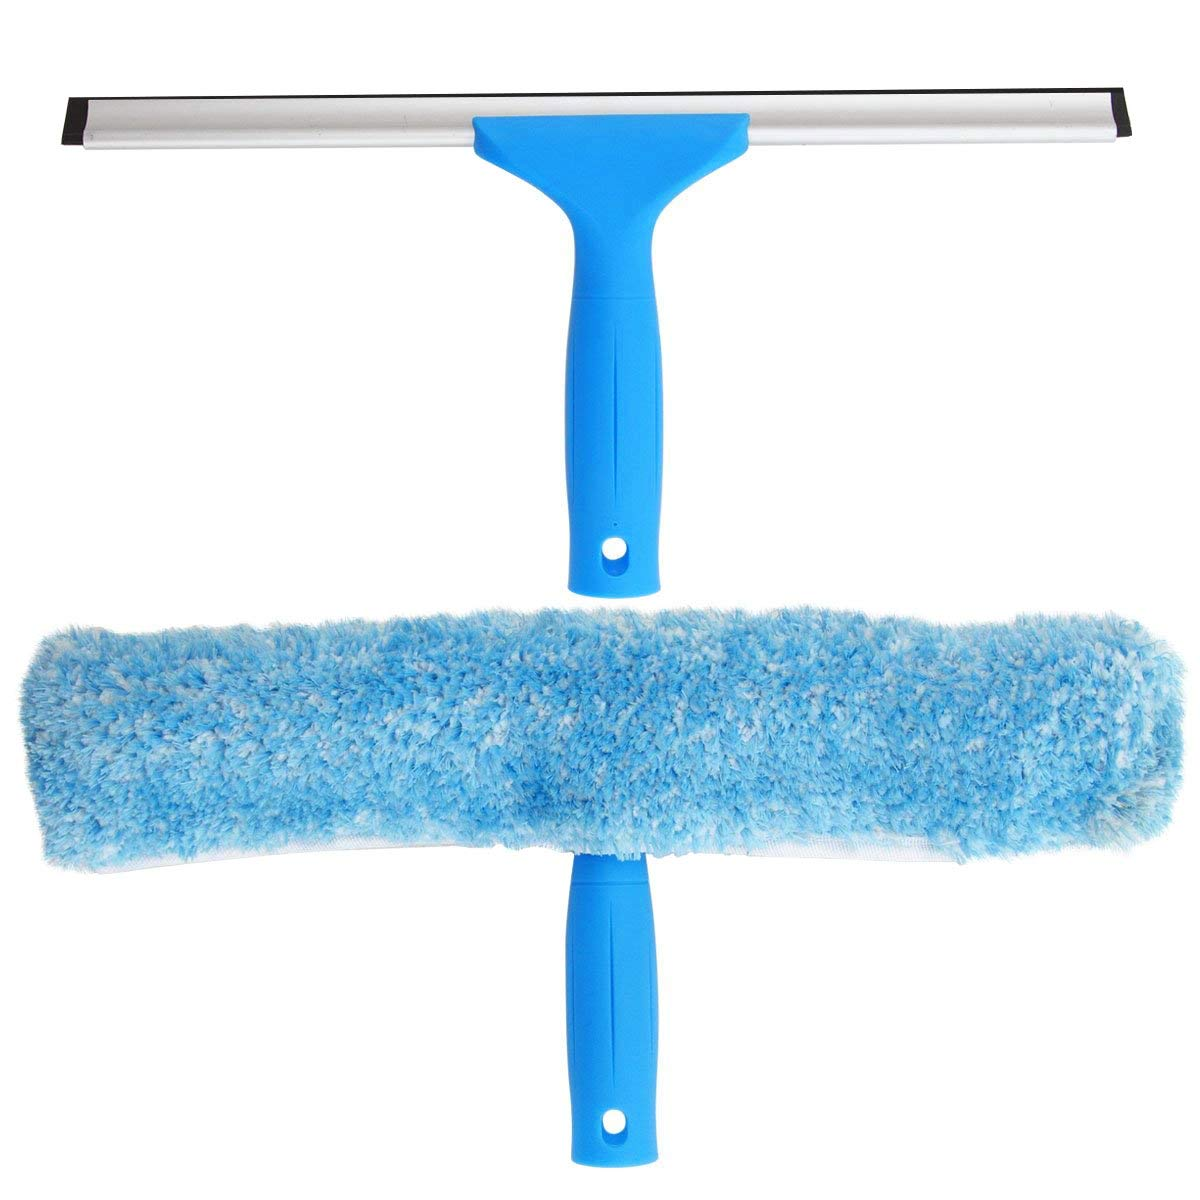 MR.SIGA Professional Window Cleaning Combo - Squeegee & Microfiber Window Scrubber, 14'' by MR.SIGA